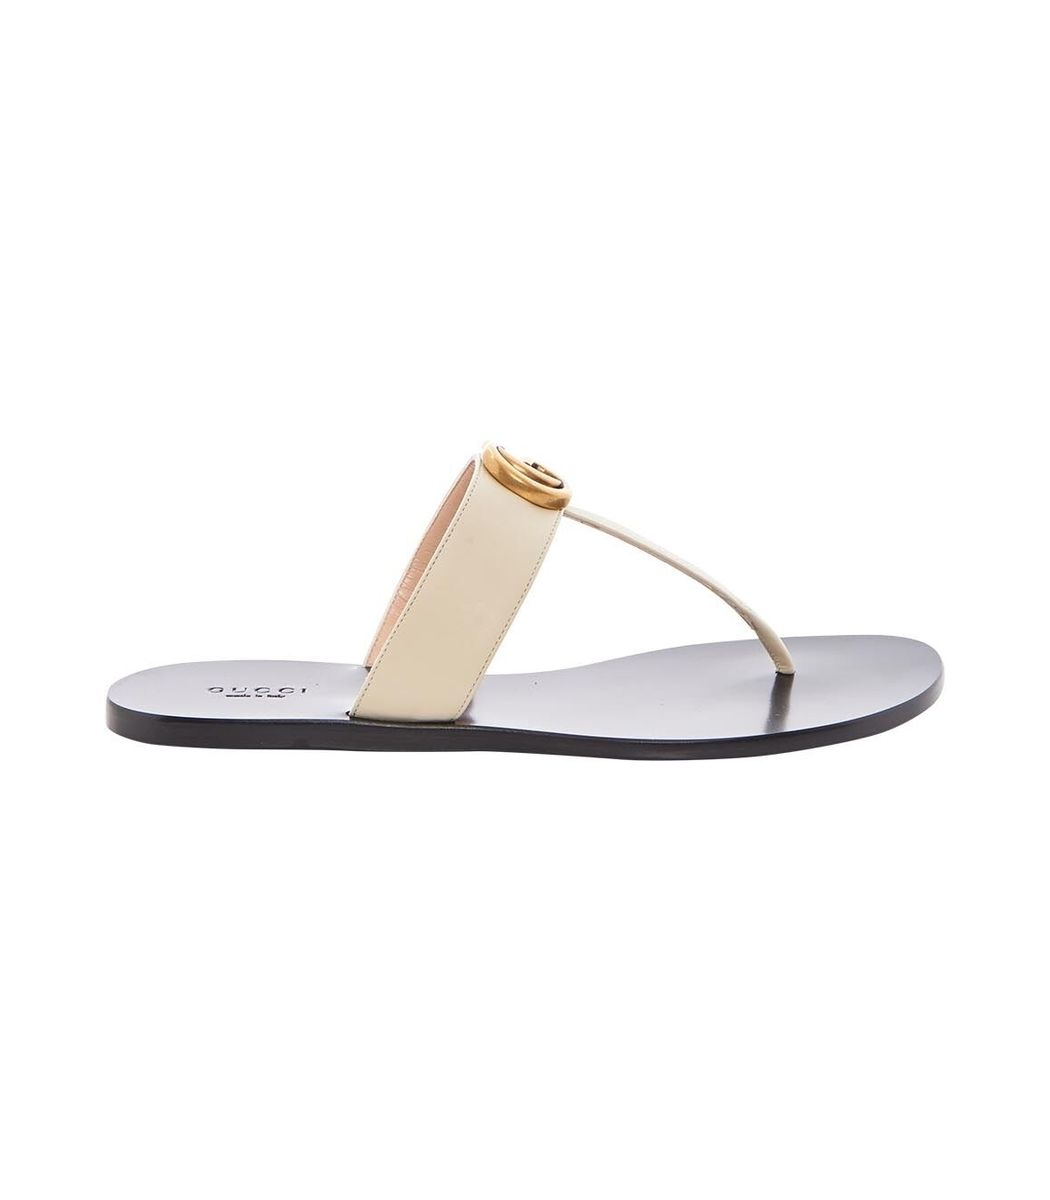 54ce123d86f GUCCI Multicolor Leather Thong Sandal with Double G.  gucci  shoes ...